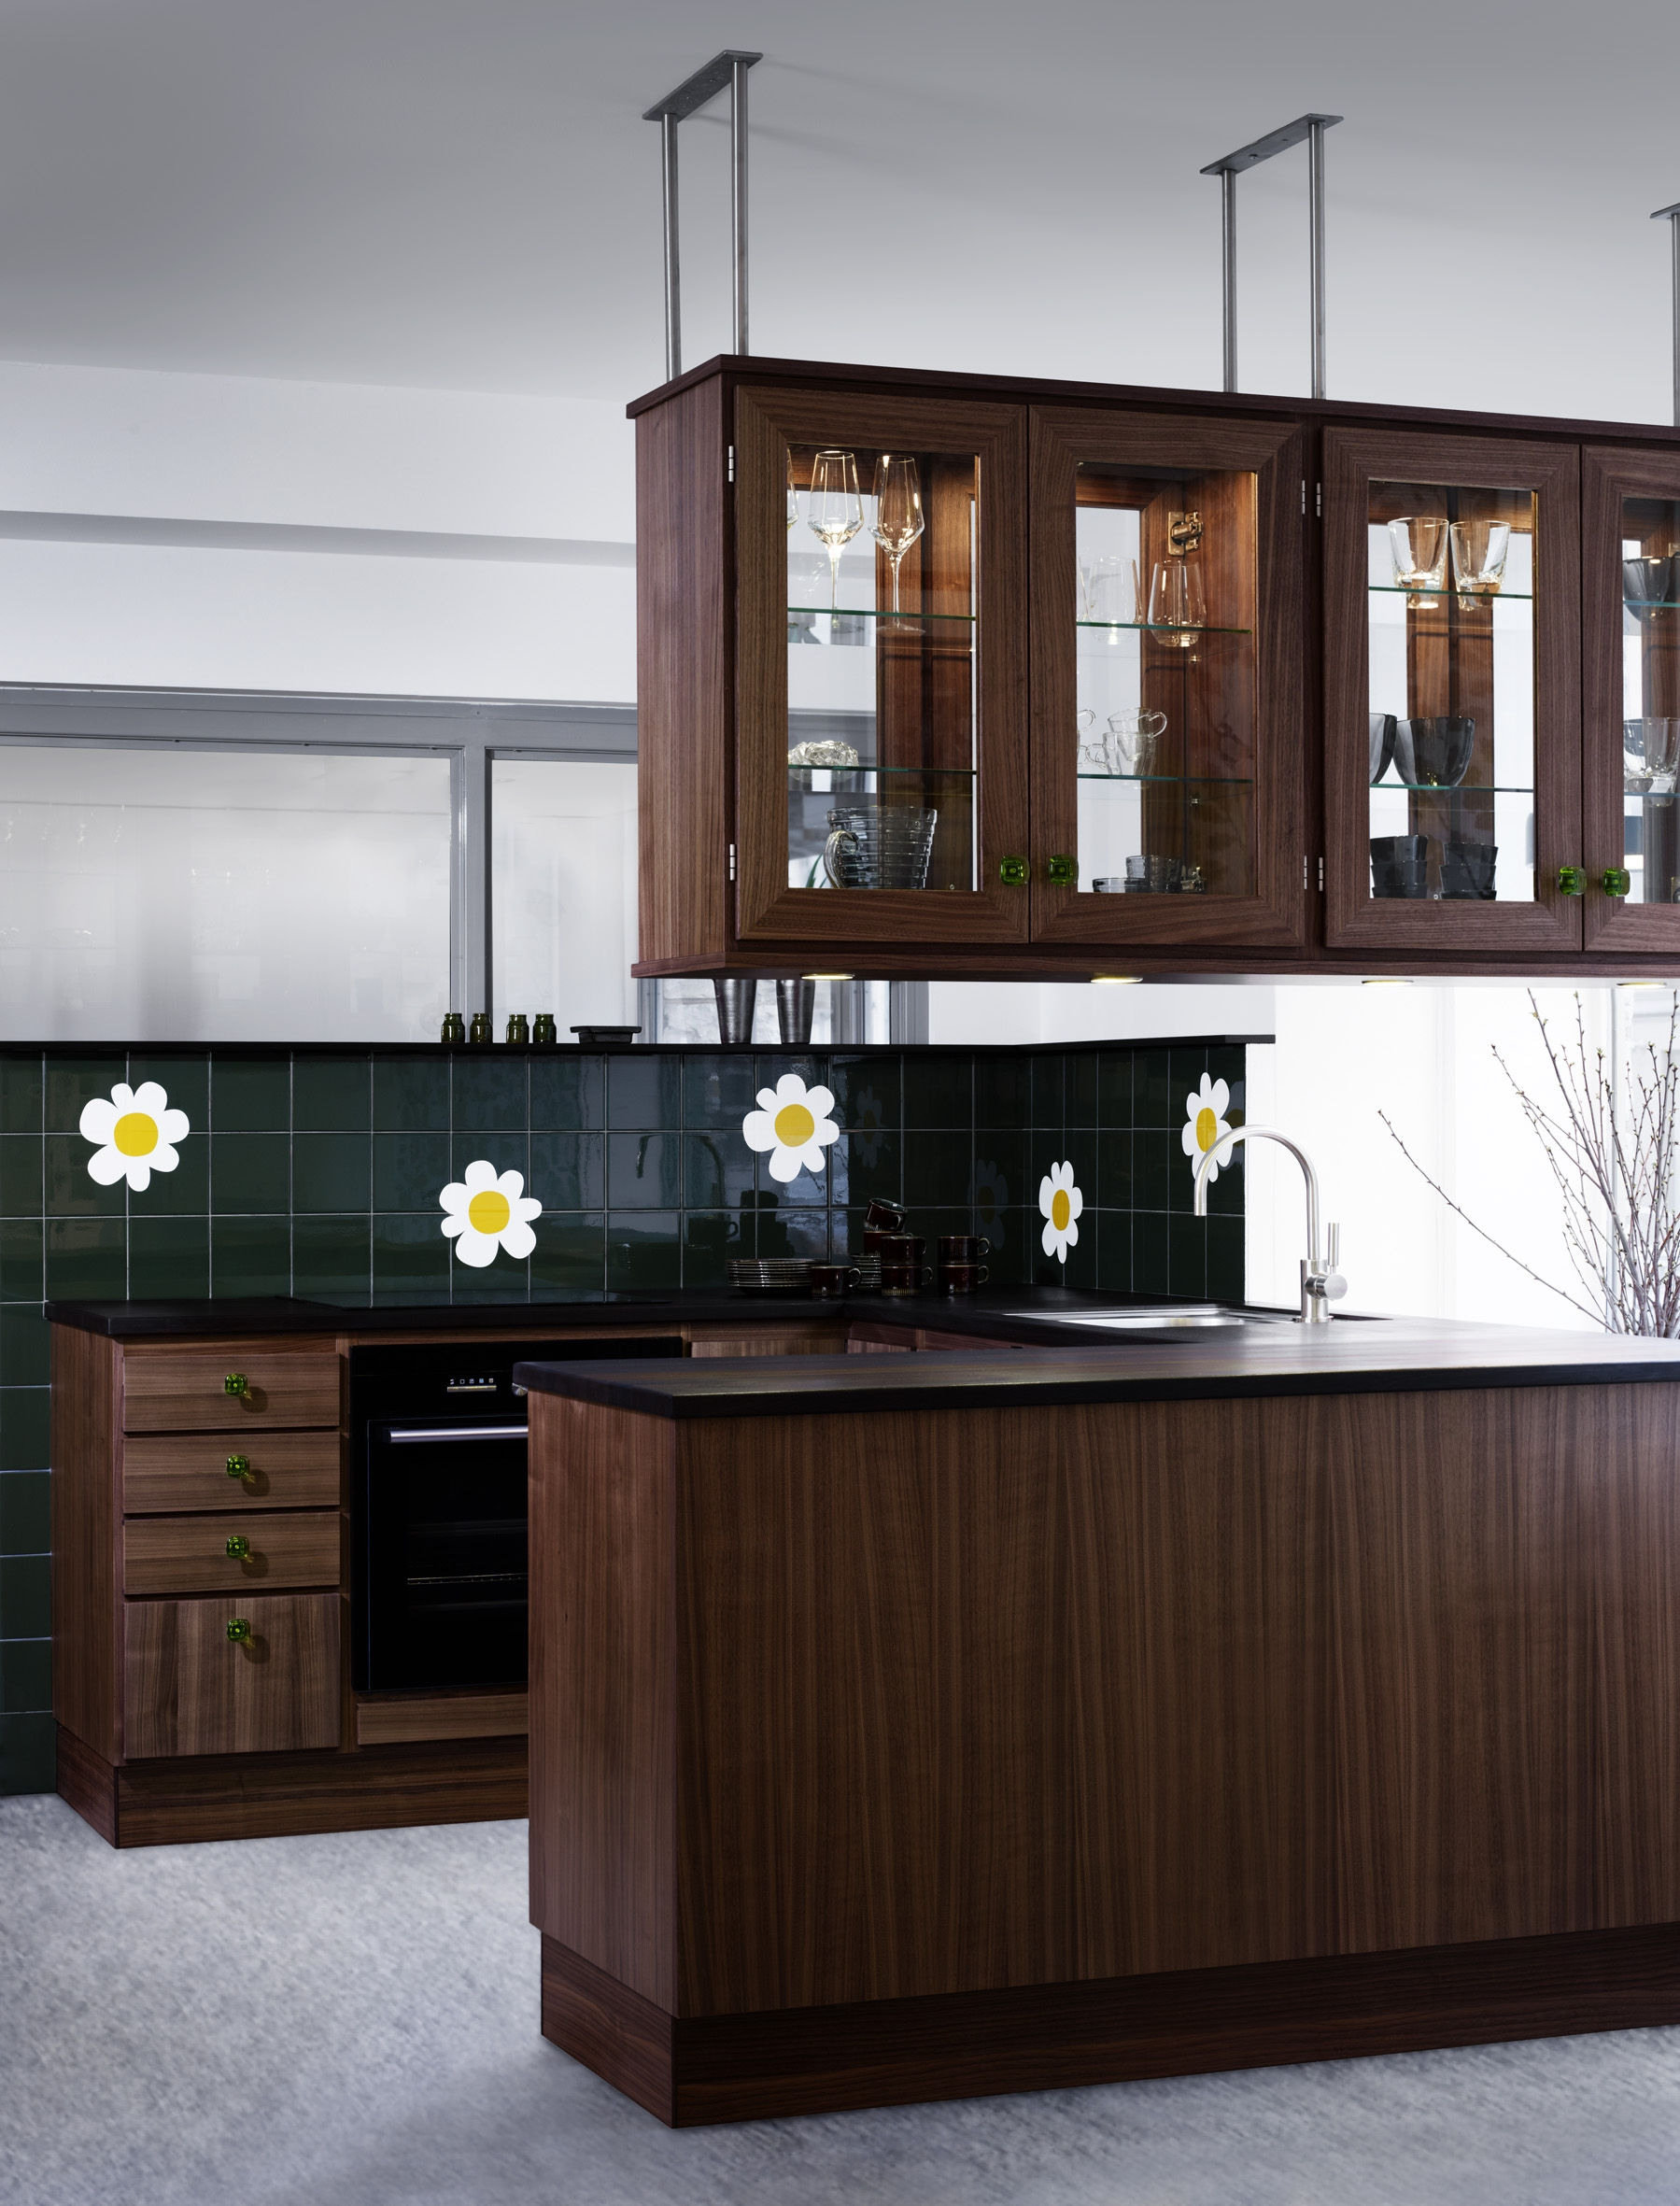 Kv num launches 39 70s inspired kitchen design during for 70s style kitchen cabinets